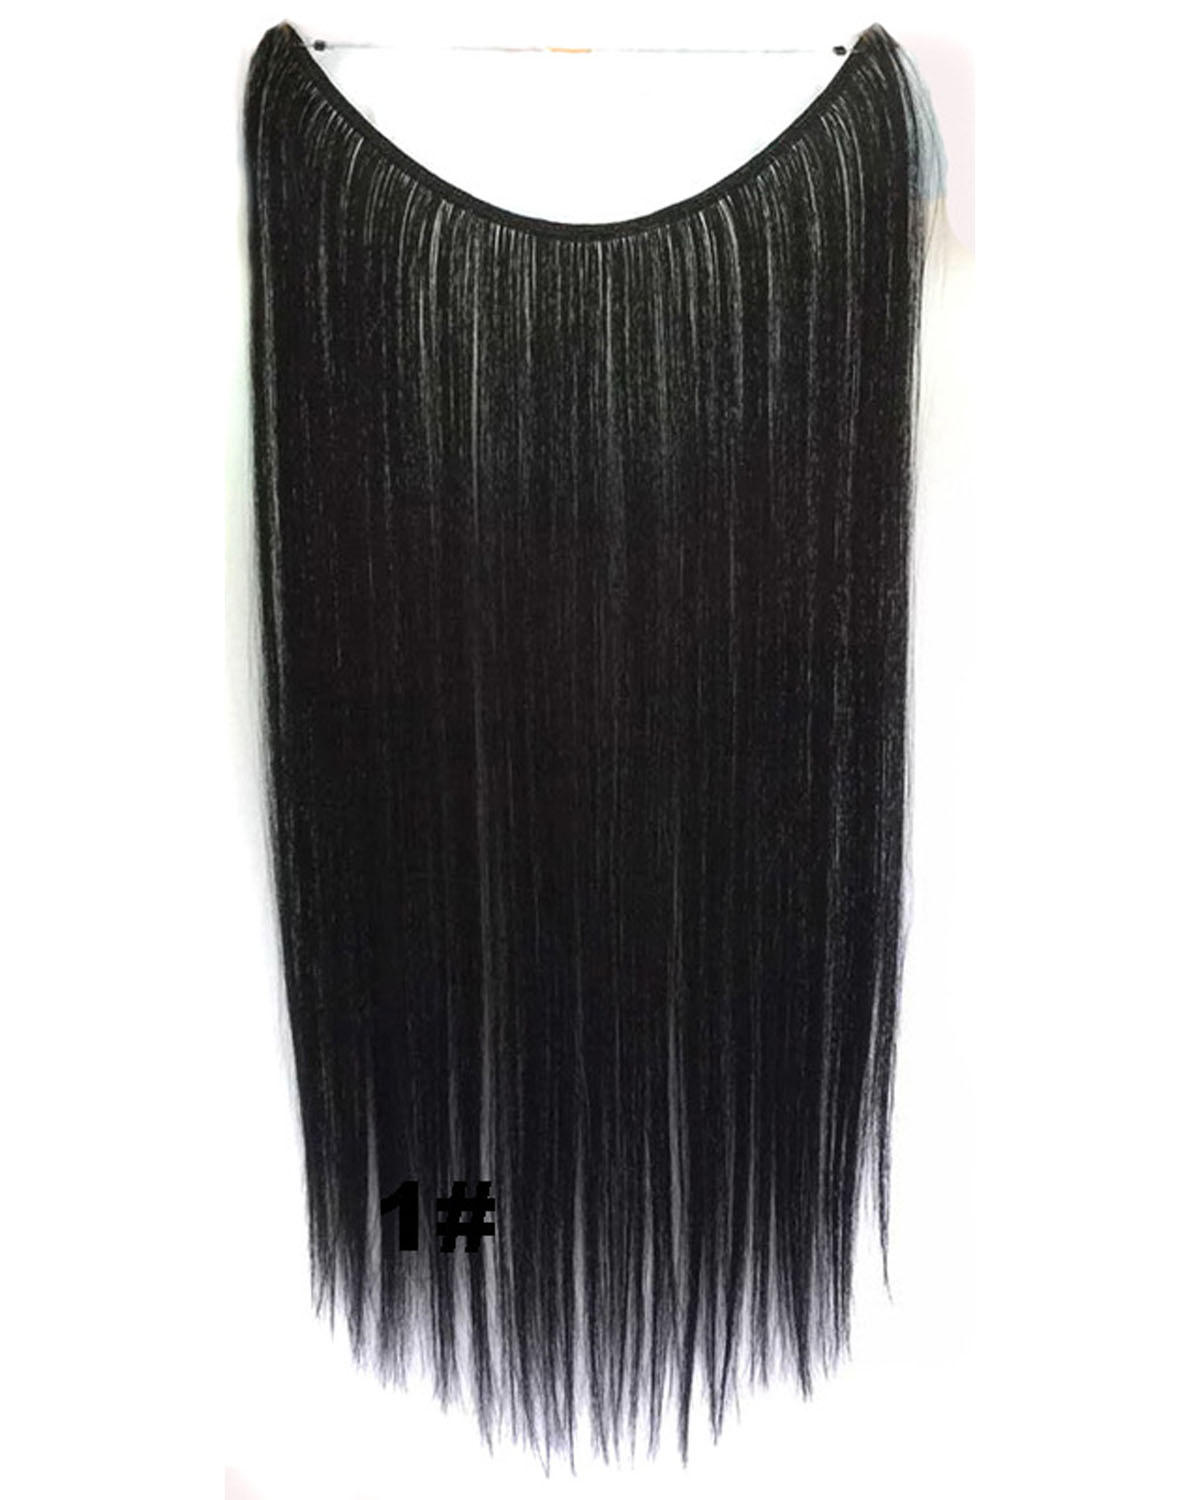 22 Inch Clean Straight and Long Invisible One Piece Miracle Wire Flip in Synthetic Hair Extension1#